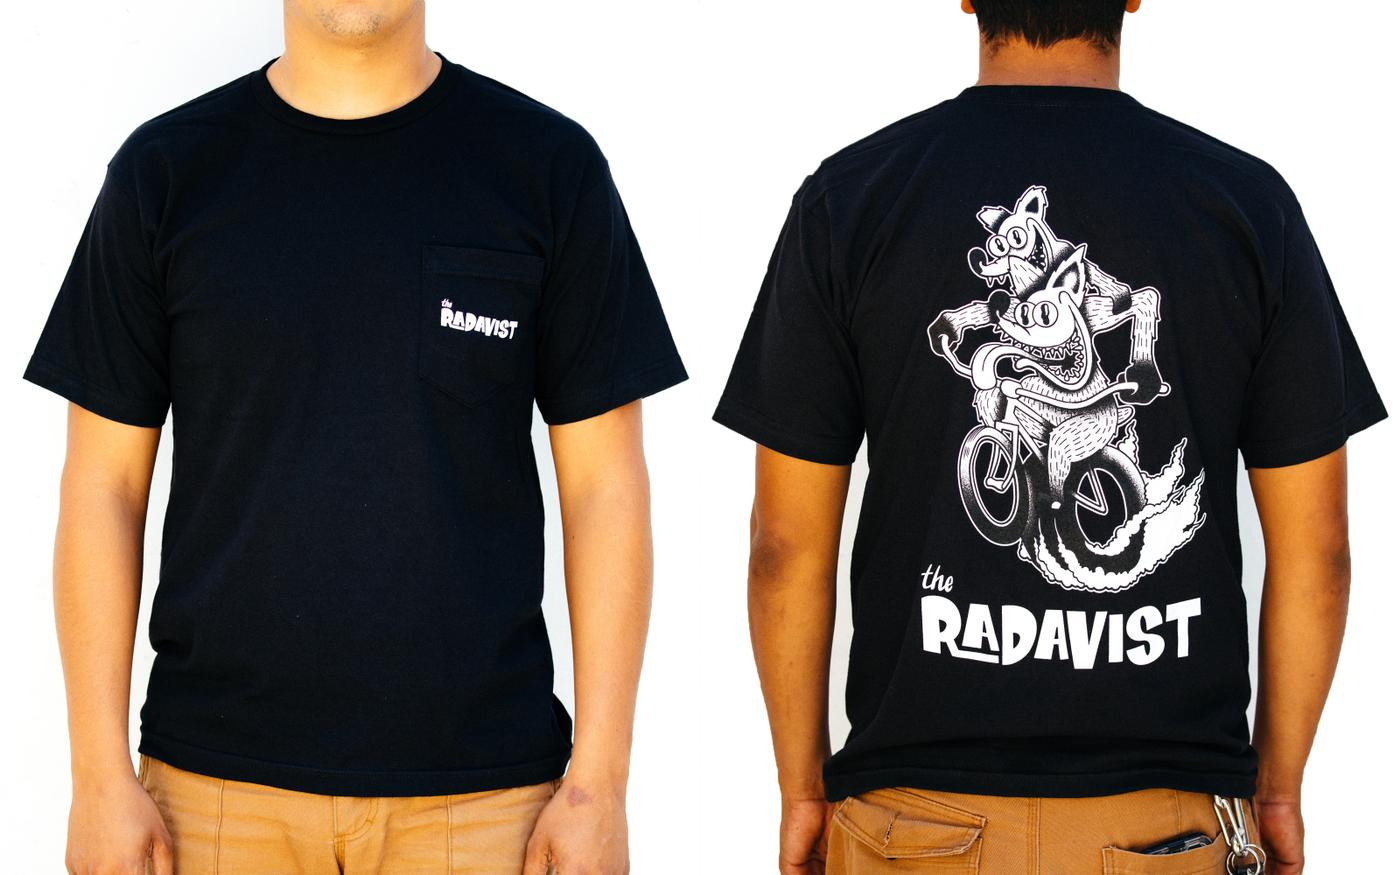 SOLD OUT: Rad Rod Shirt and Bottle Package by Gerald Bowles